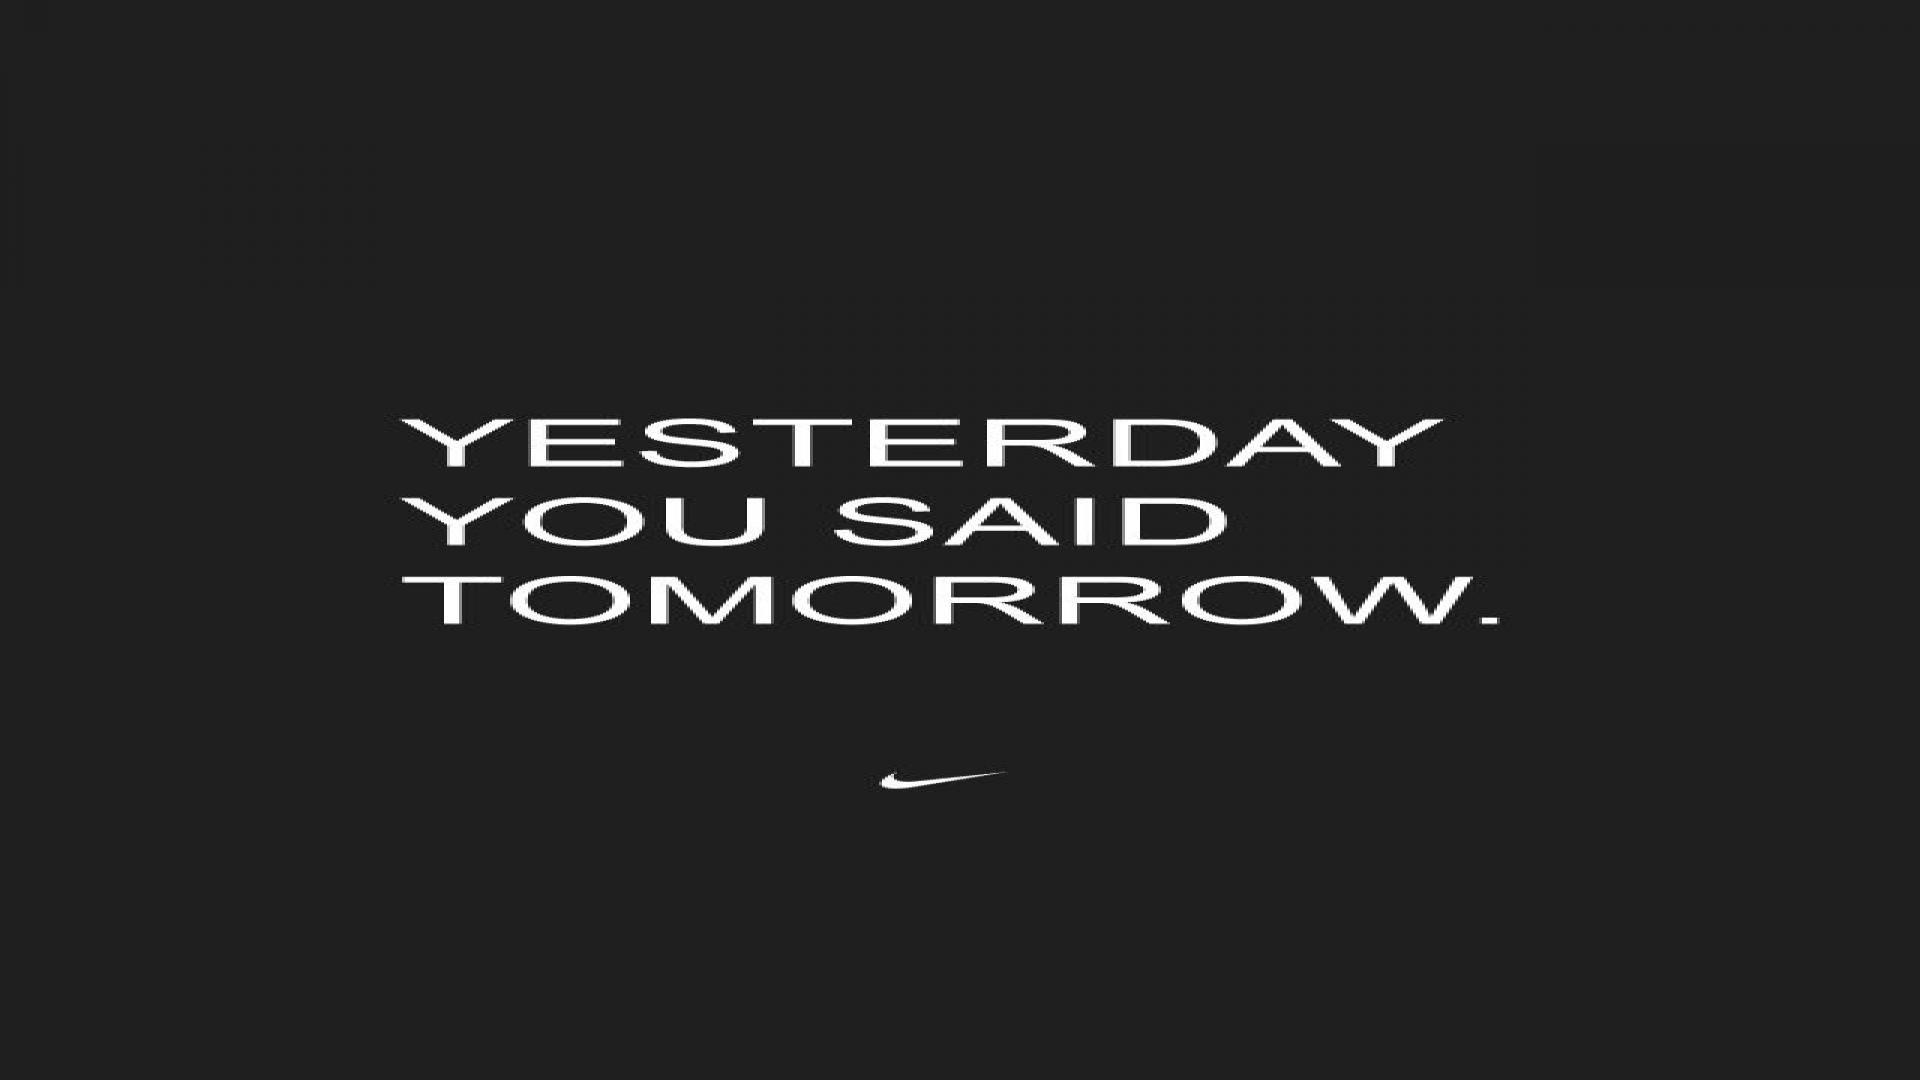 1920x1080 Nike Motivational Wallpaper - Picserio.com